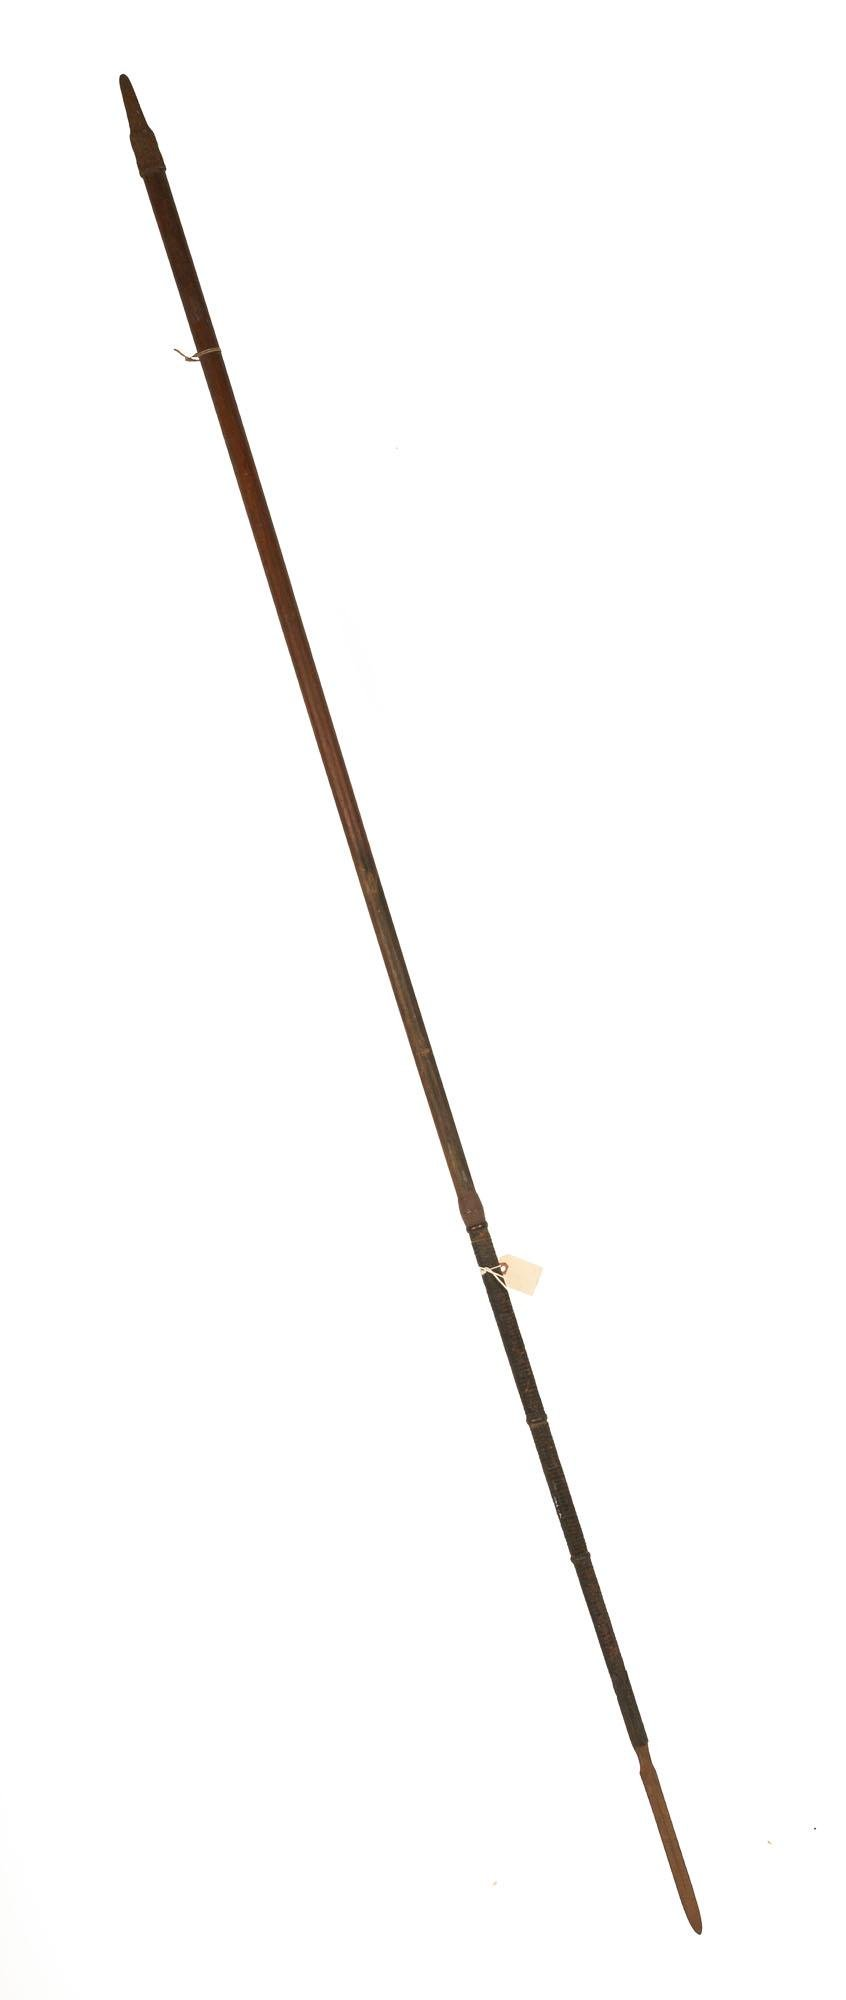 Early Chinese Spear